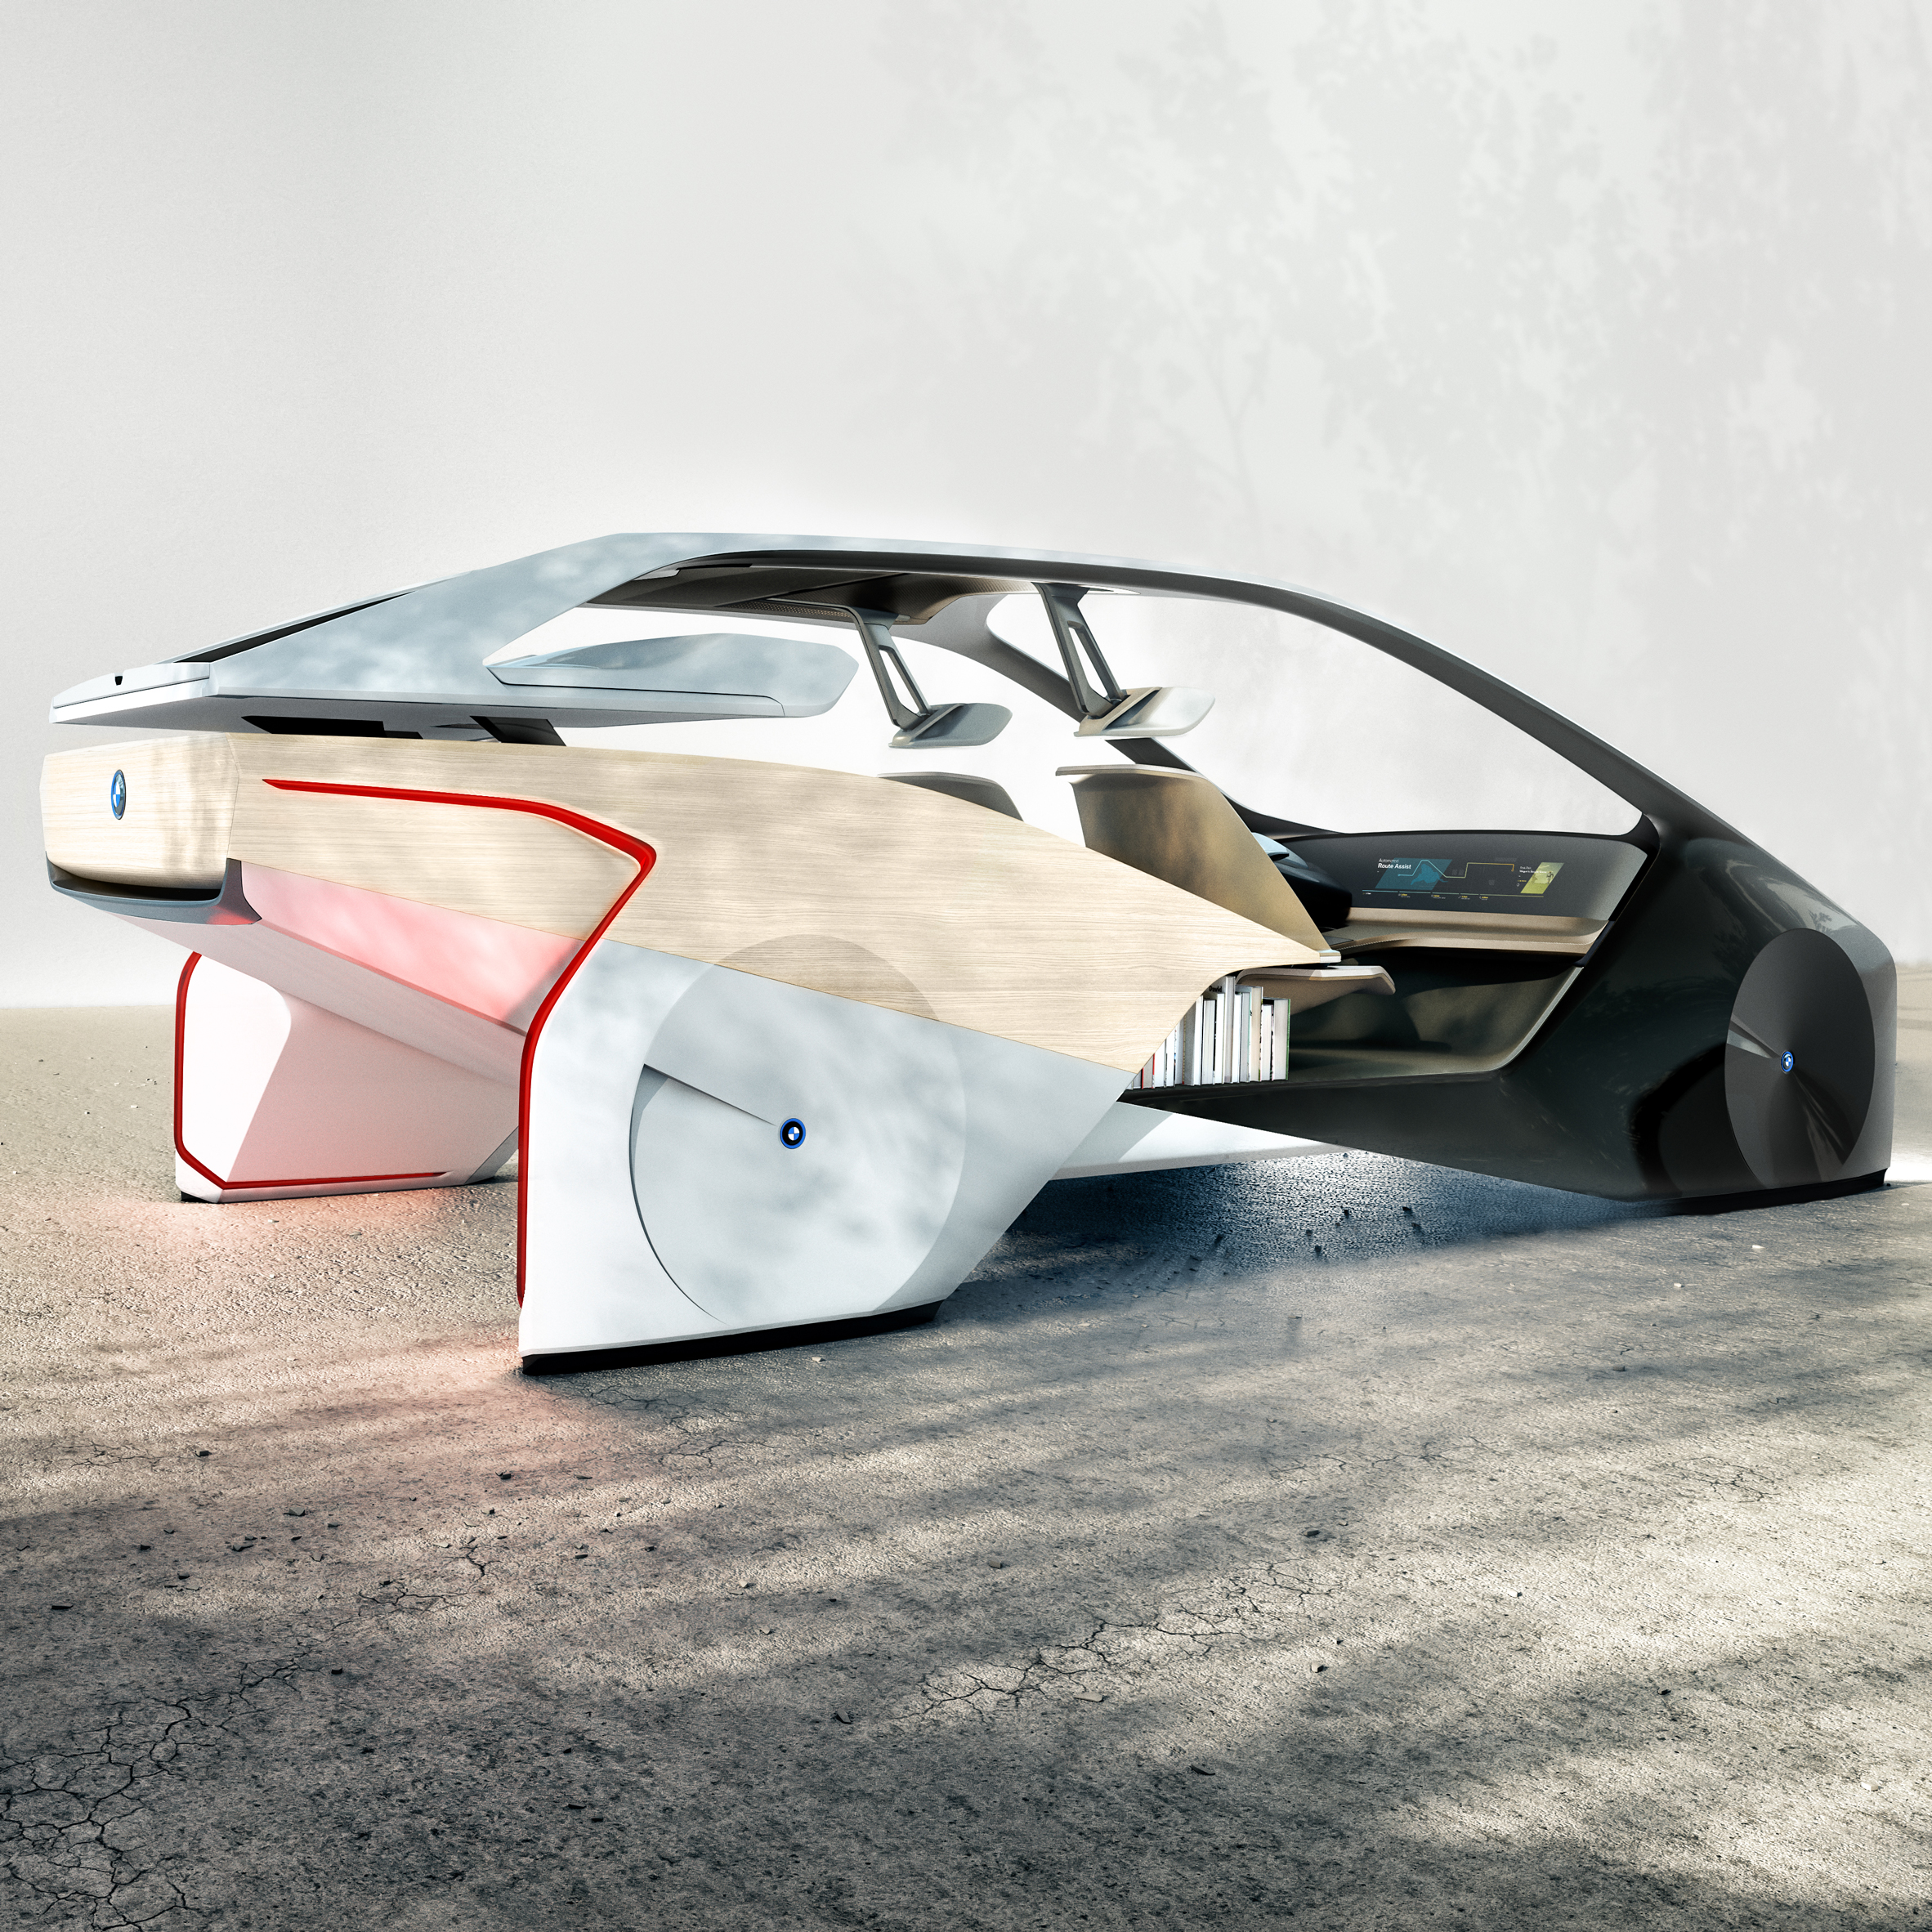 Bmw Concept Car Could Receive Drone Deliveries On The Move